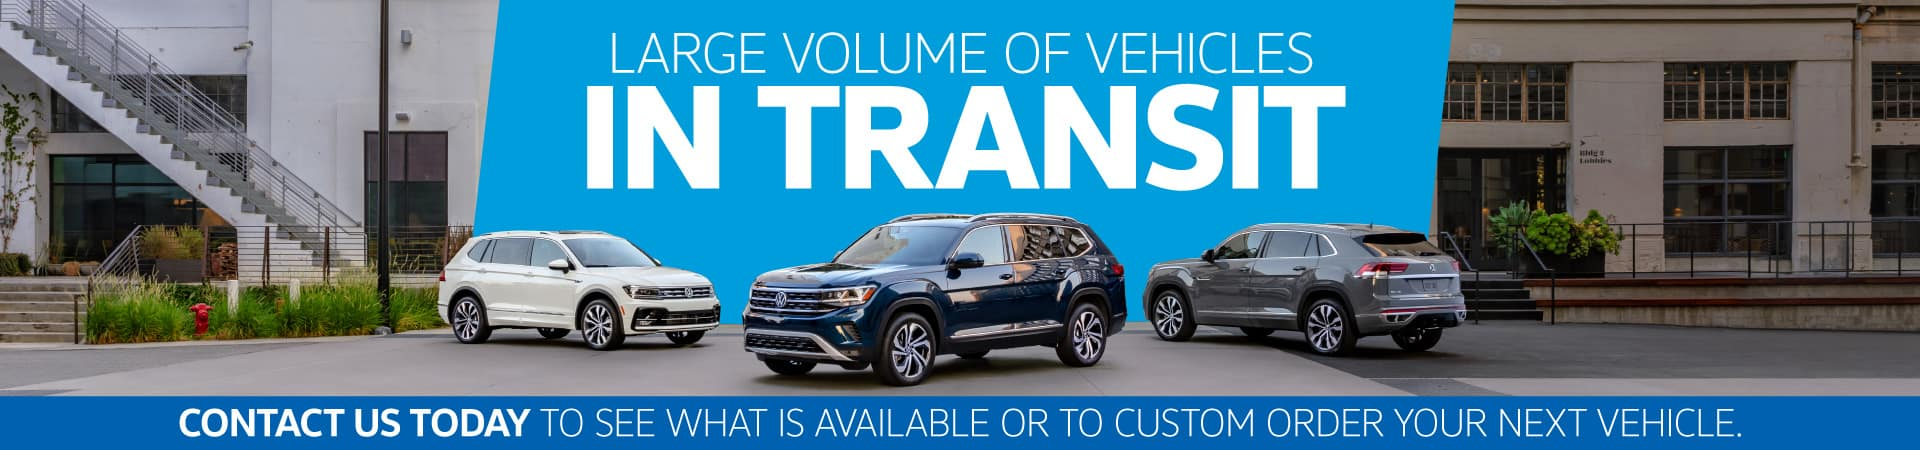 Large Volume of Vehicles In Transit - Contact Us Today